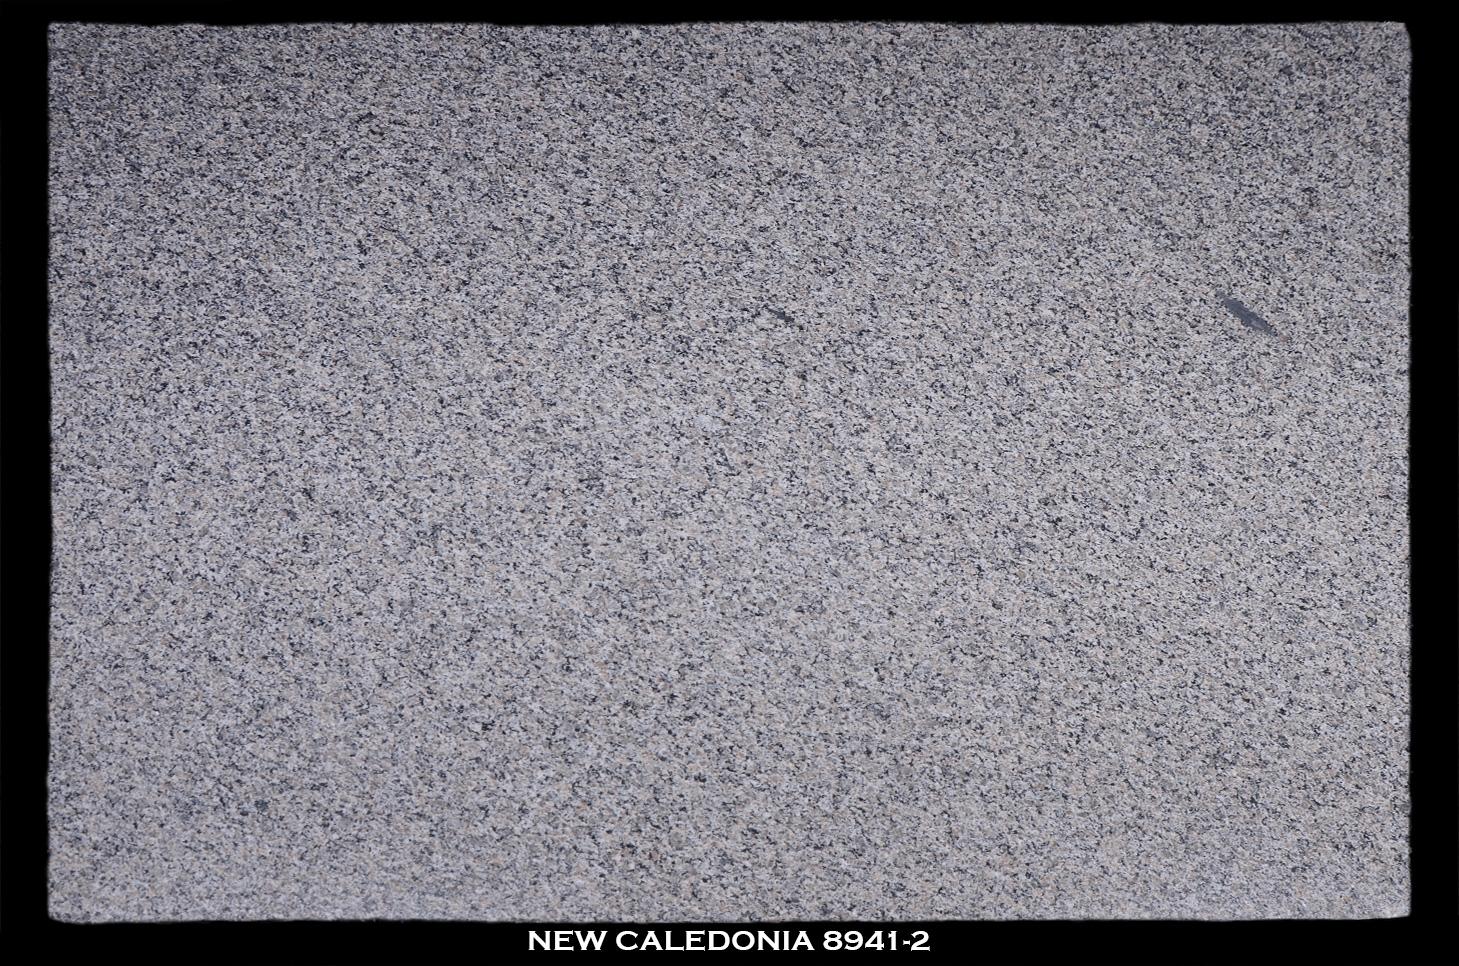 NEW-CALEDONIA-8941-SLAB